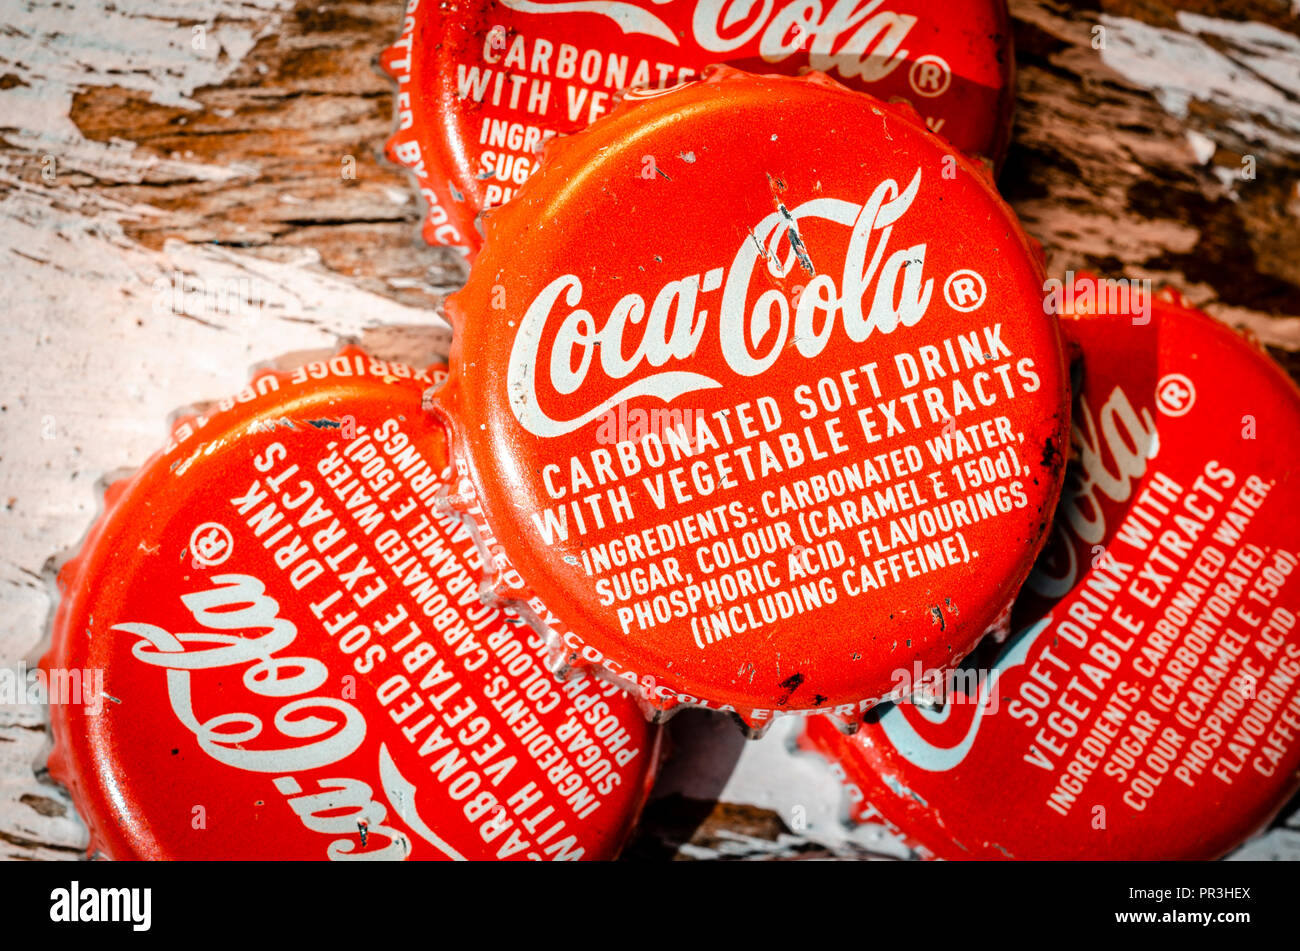 Coca Cola Bottle Tops, Coca-Cola  was first introduced in 1886 in the USA. - Stock Image